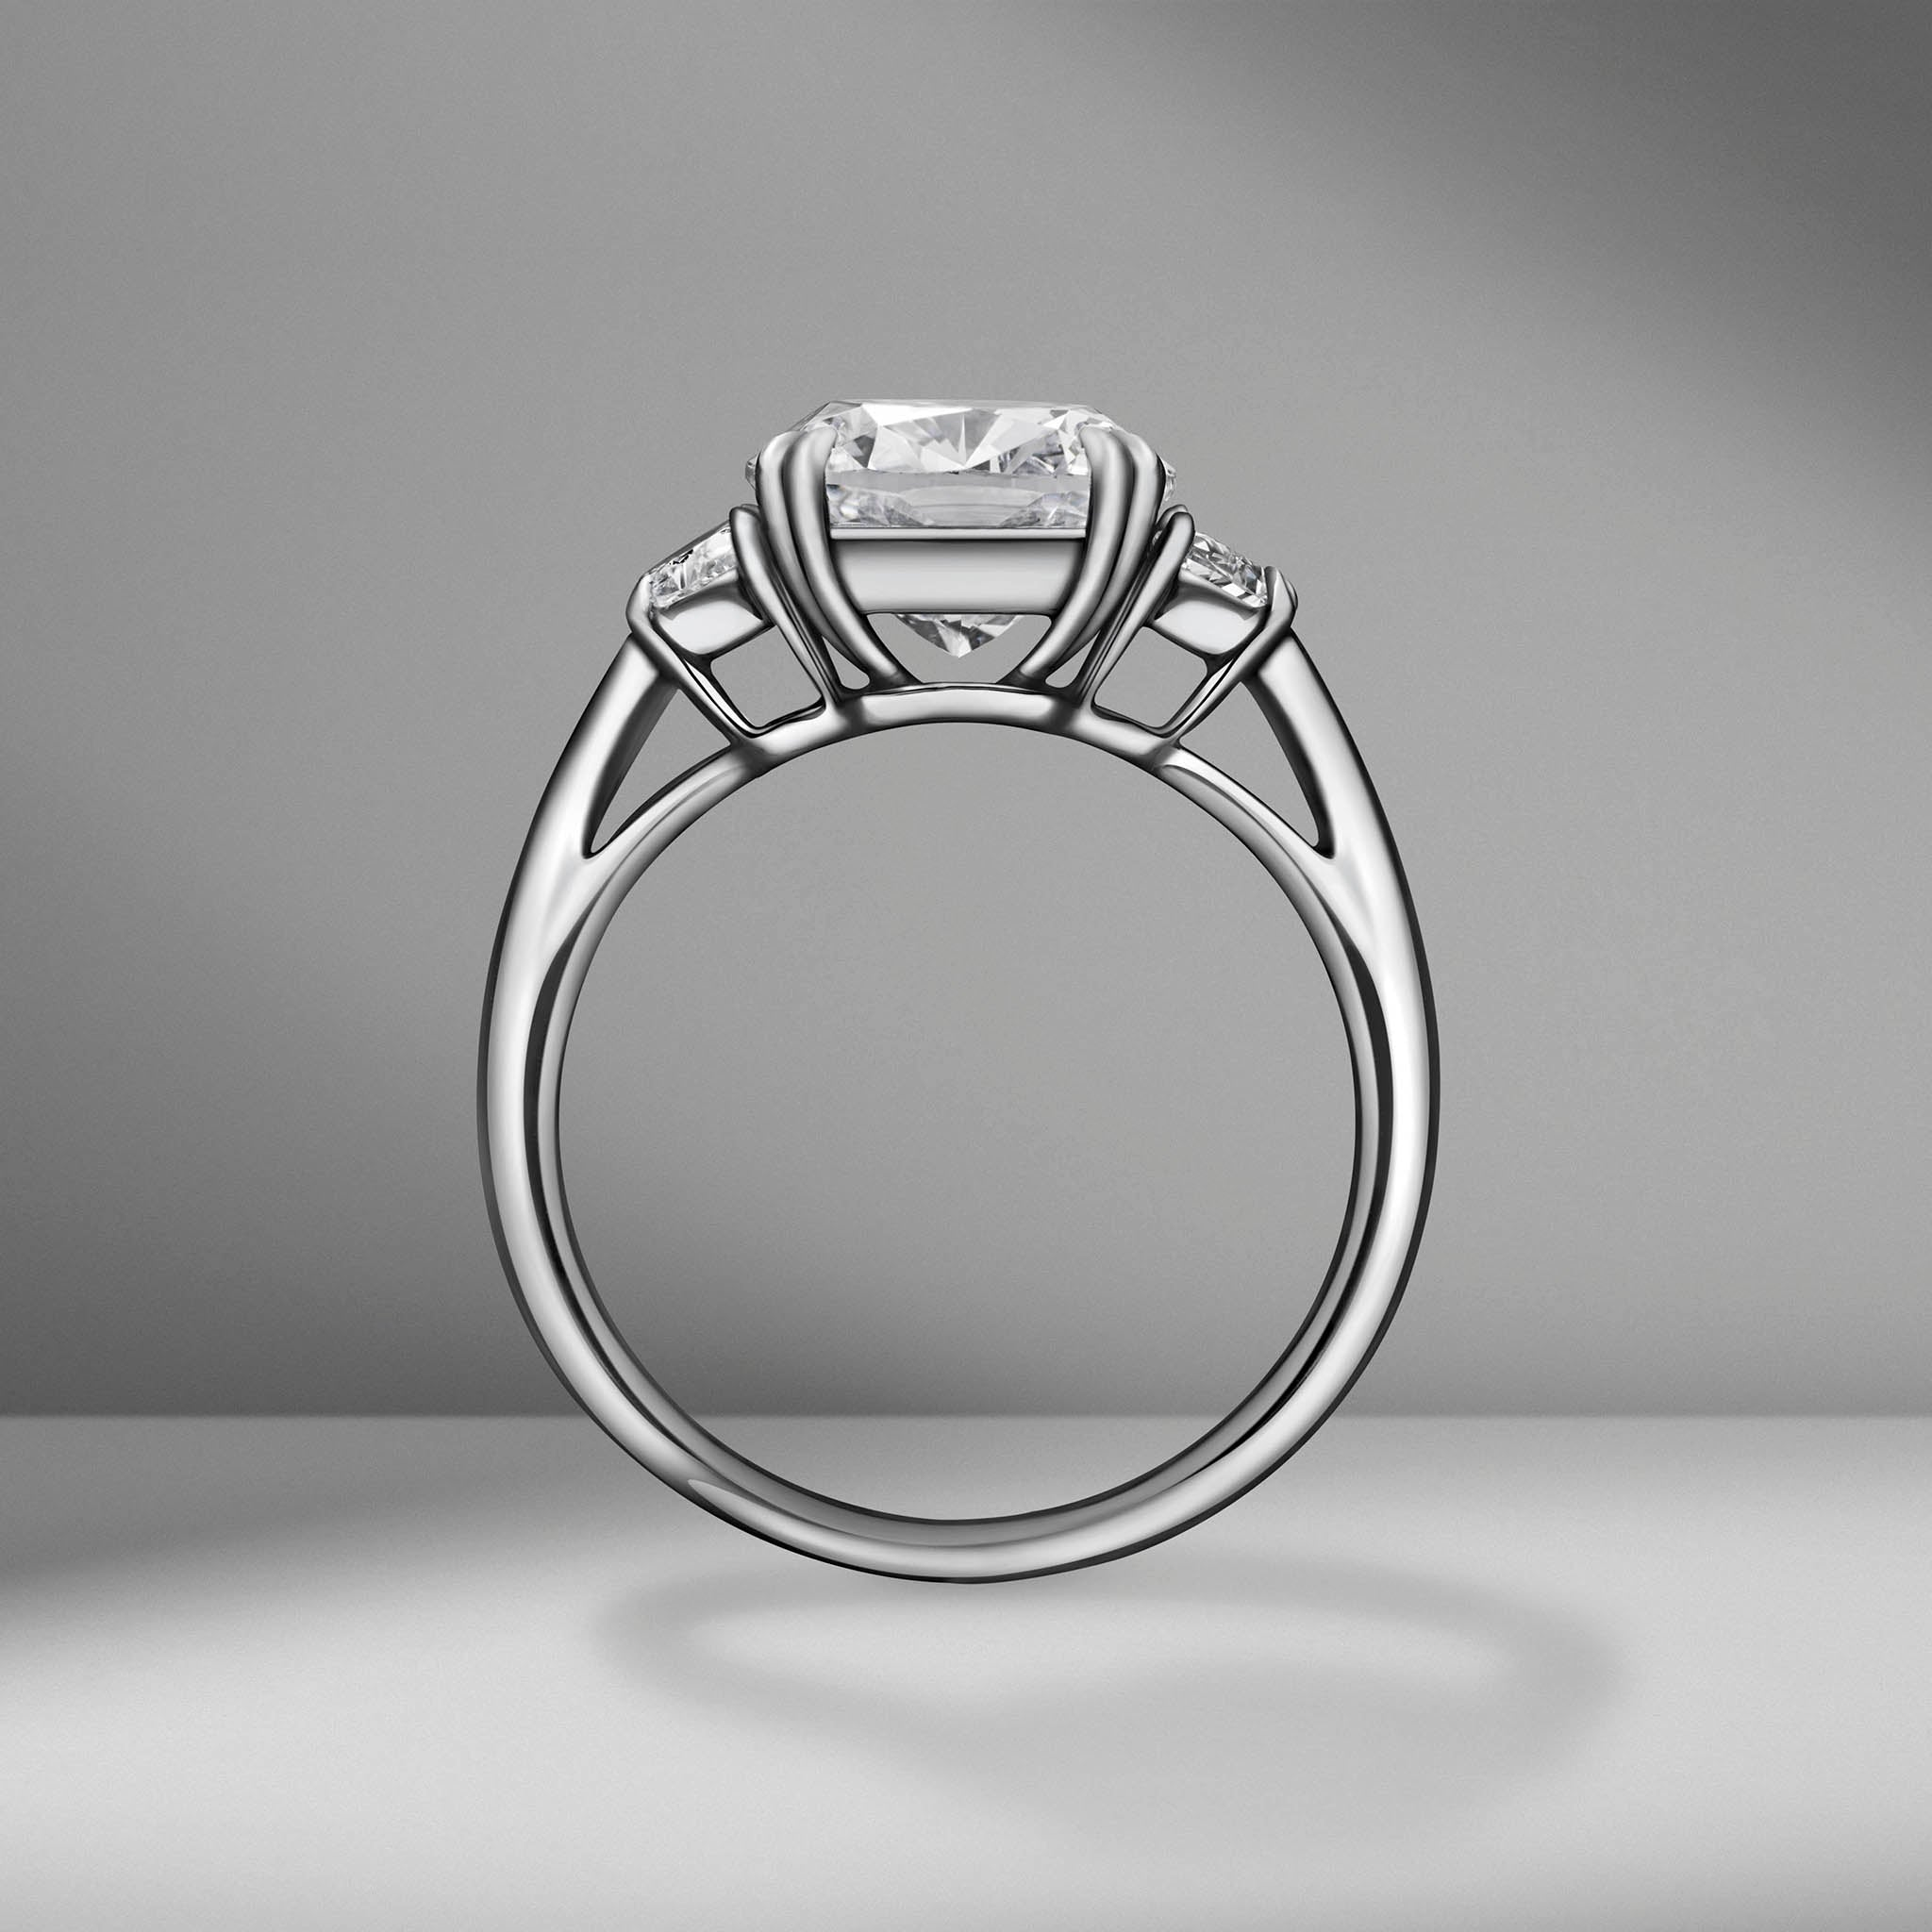 Cushion Cut Engagement Ring with Half Moons